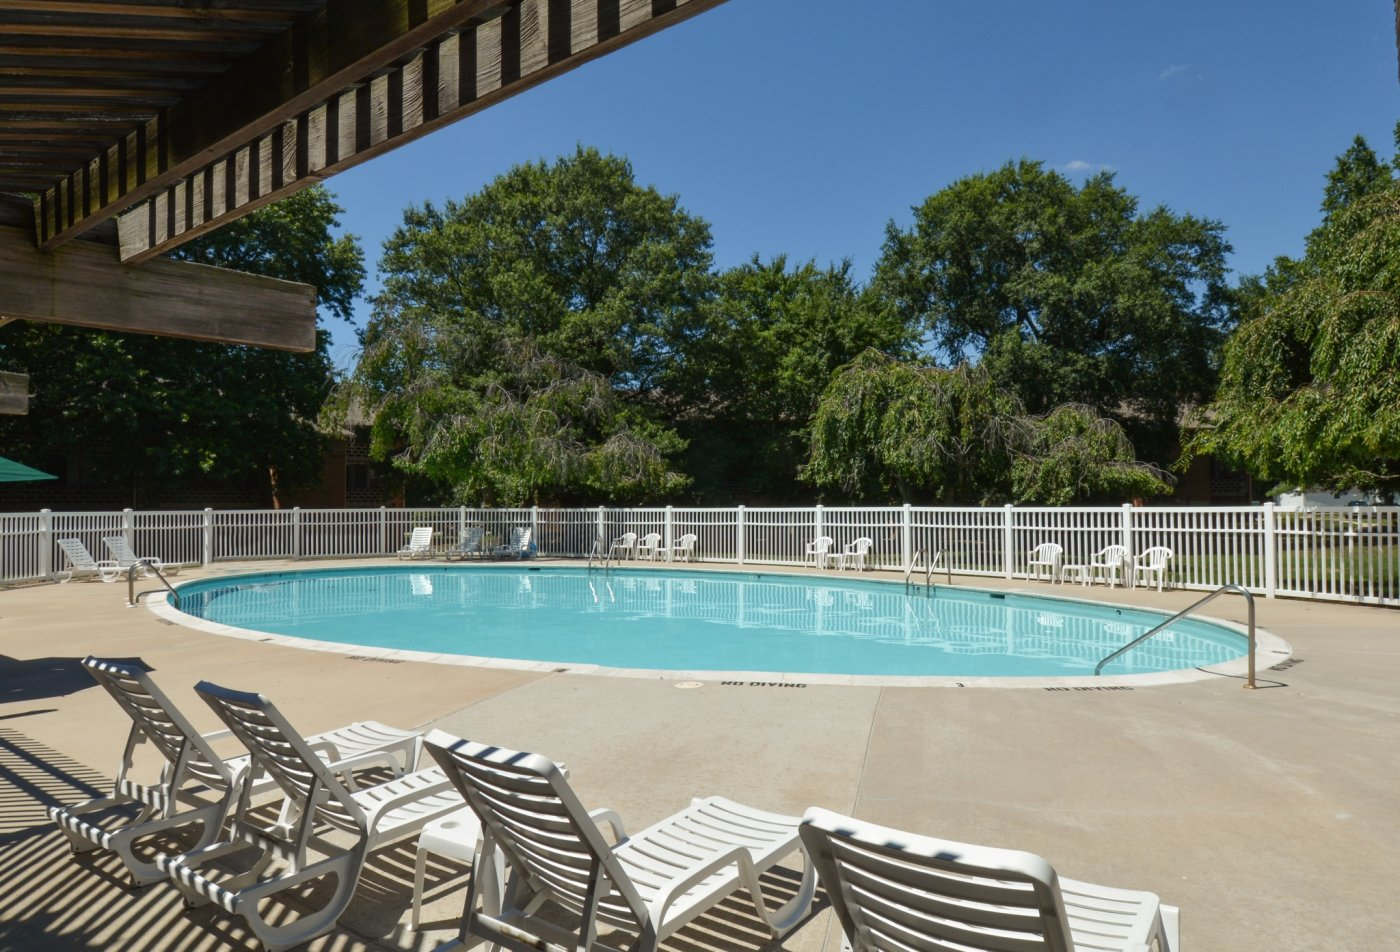 Swimming Pool | Apartment Homes in Dover, DE | Lake Club Apartments